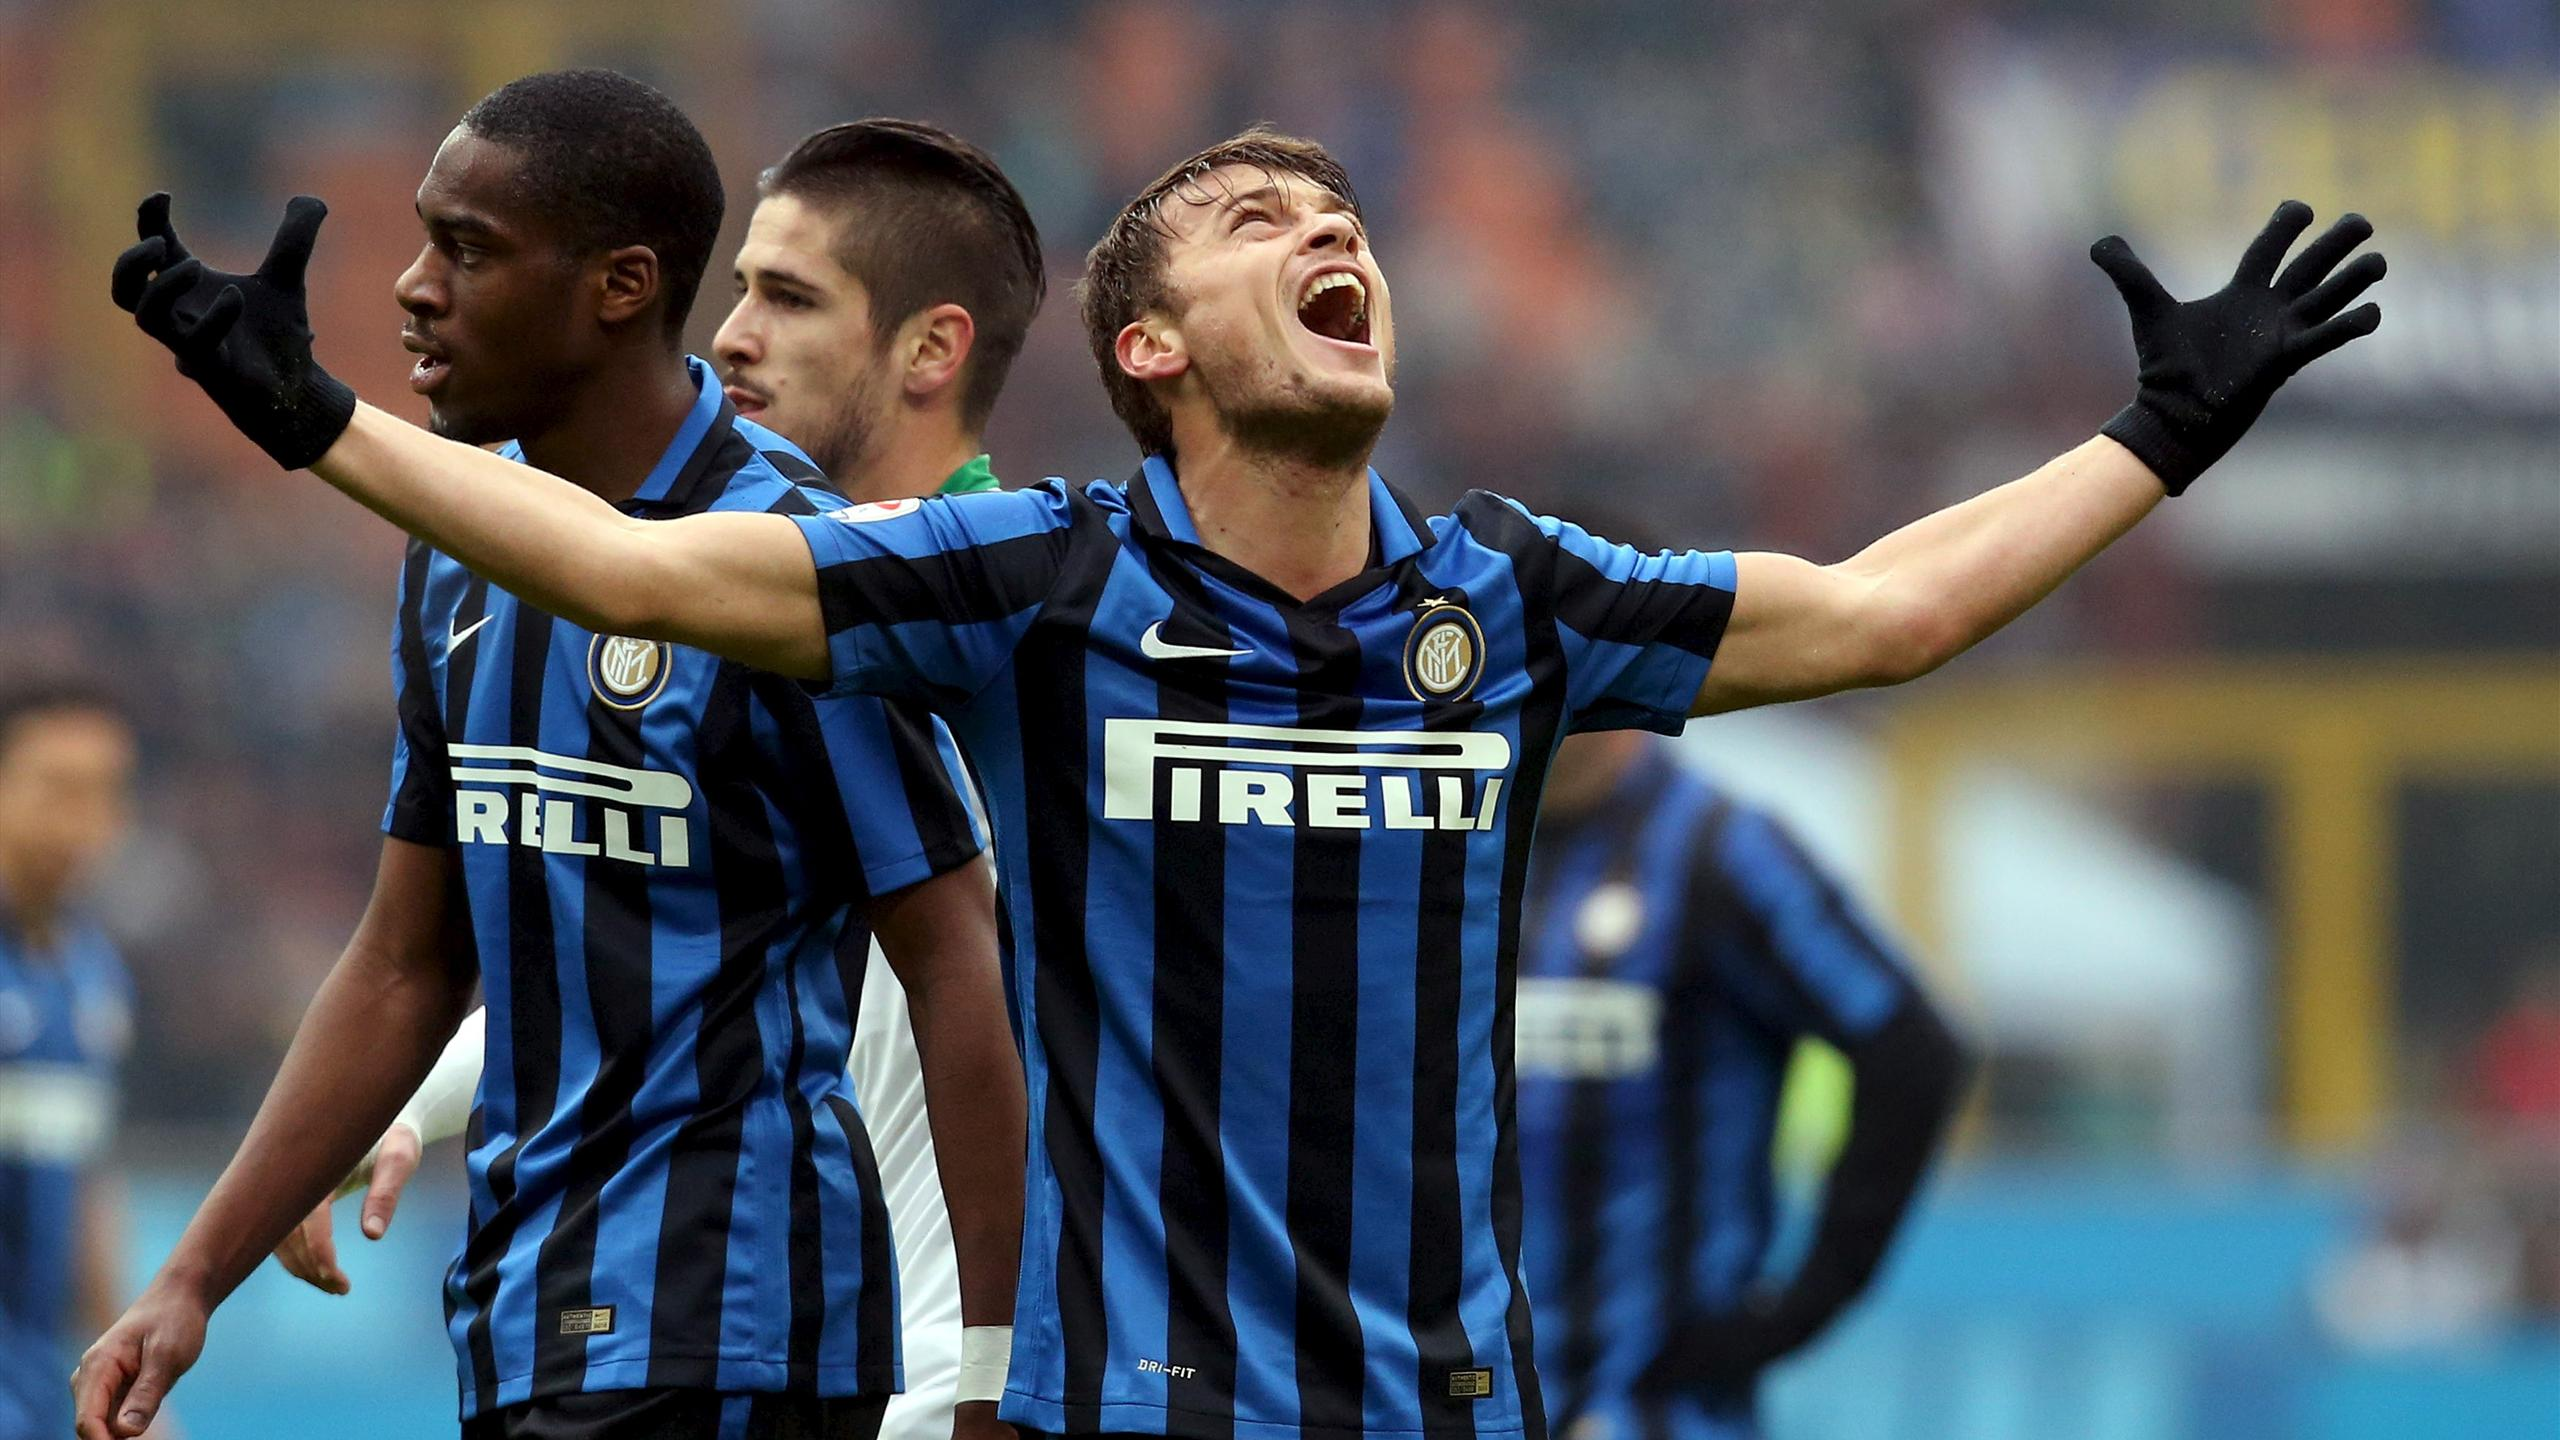 Adem Ljajic reacts after missing a goal opportunity against Sassuolo